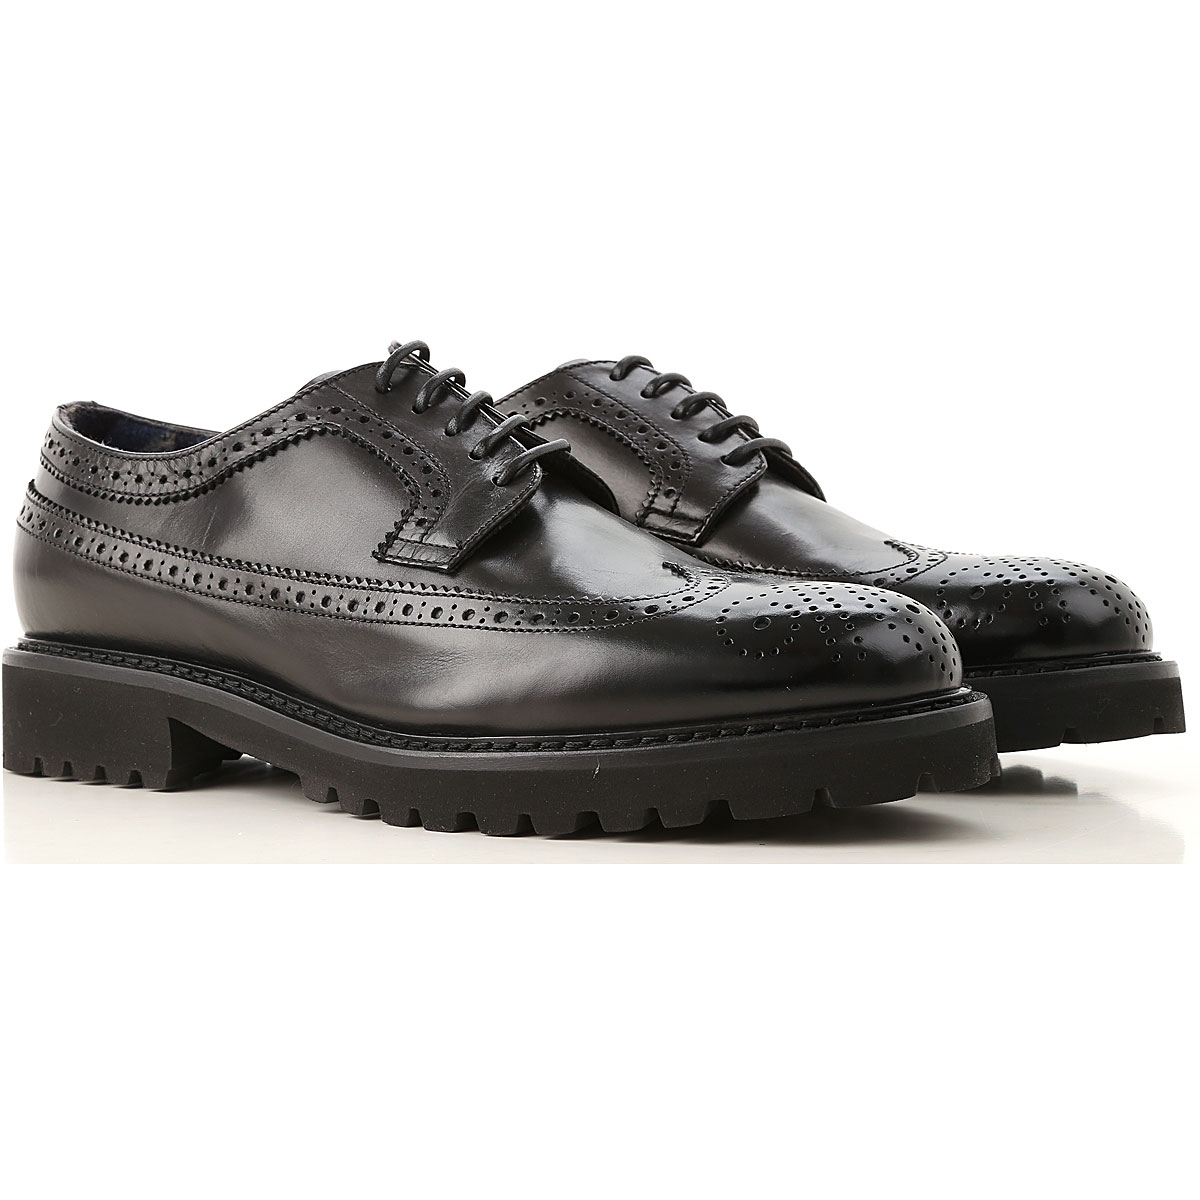 Image of Doucals Lace Up Shoes for Men Oxfords, Derbies and Brogues, Black, Leather, 2017, 10 10.5 7.5 8 9